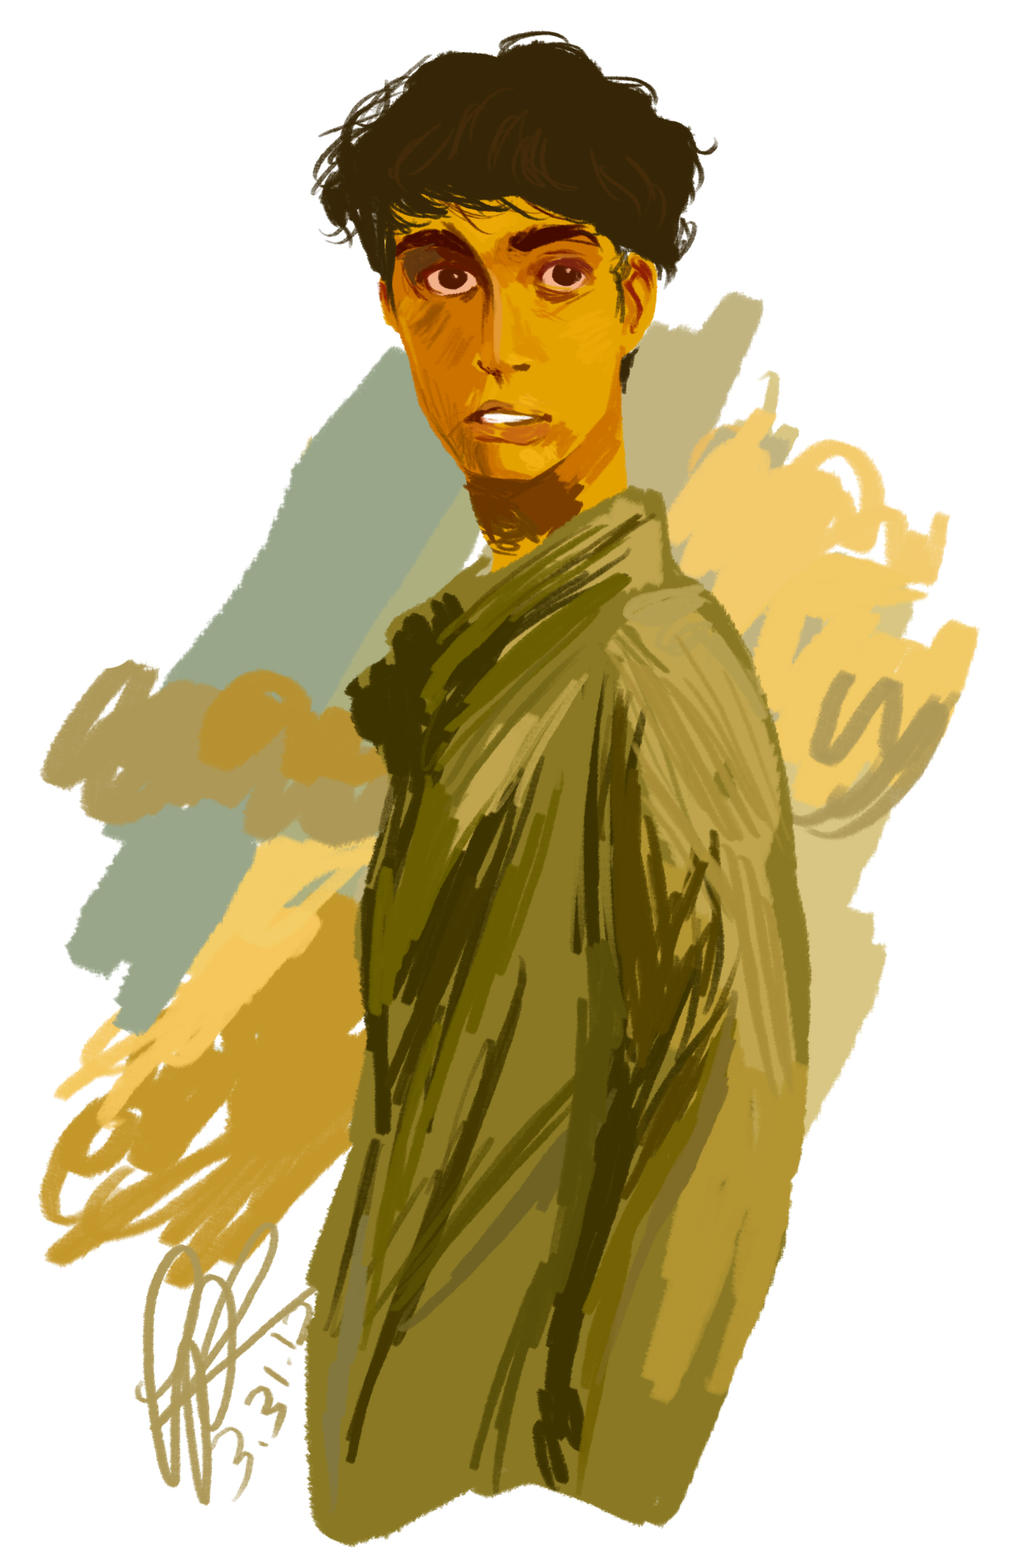 Pi patel by freakypencils on deviantart for Life of pi patel